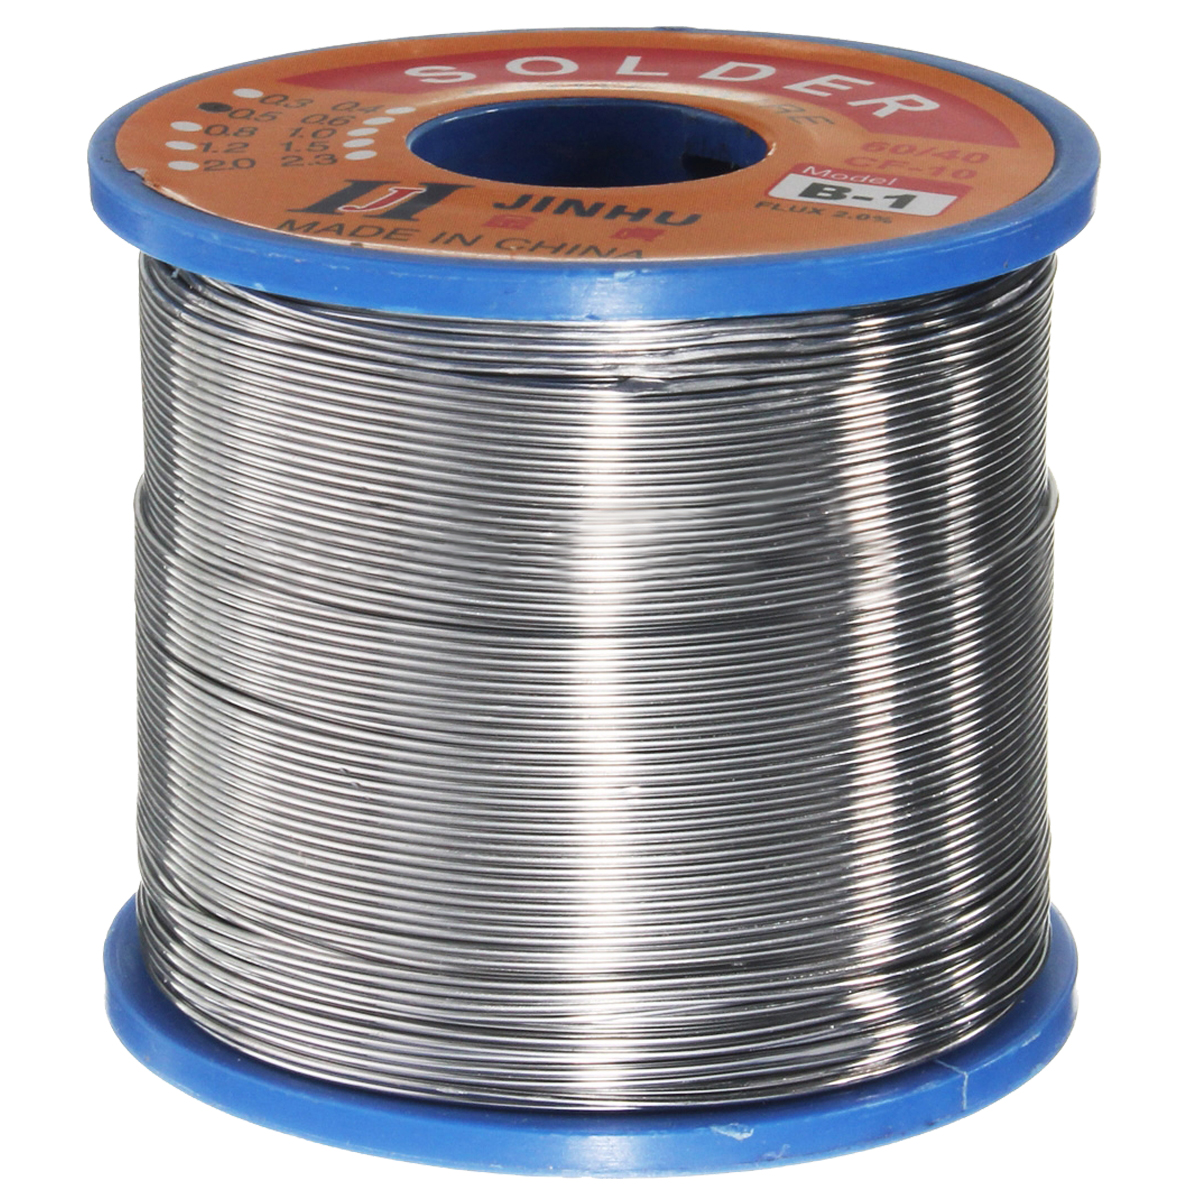 400g 60/40 Tin Lead Solder Flux Wire Rosin Core Soldering Roll 0.6-1.2mm